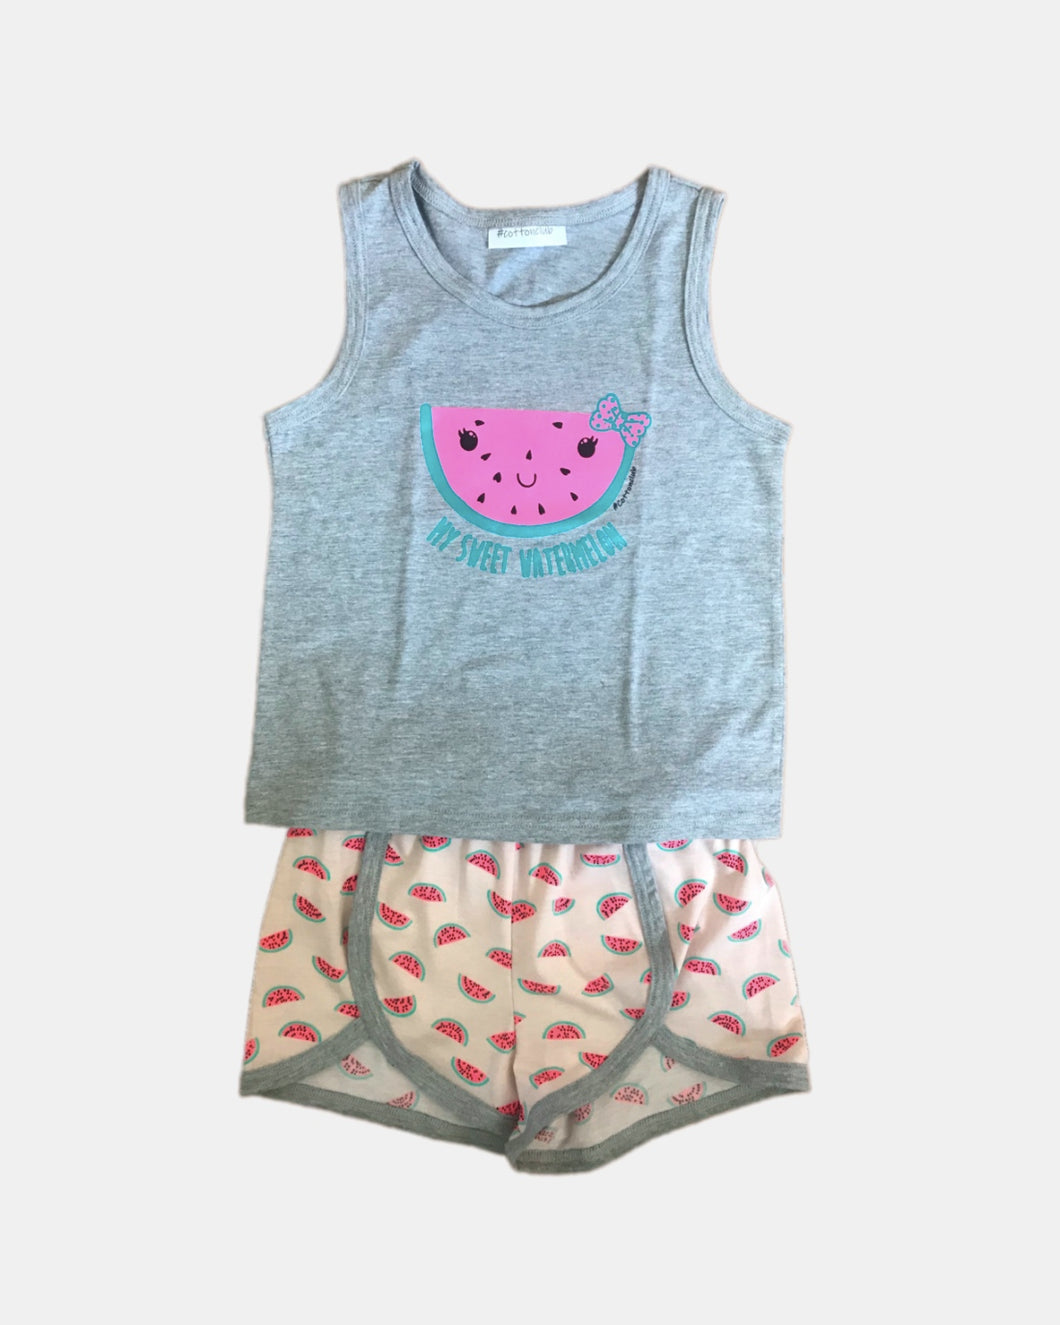 OLDER GIRLS SUMMER WATERMELON PYJAMAS